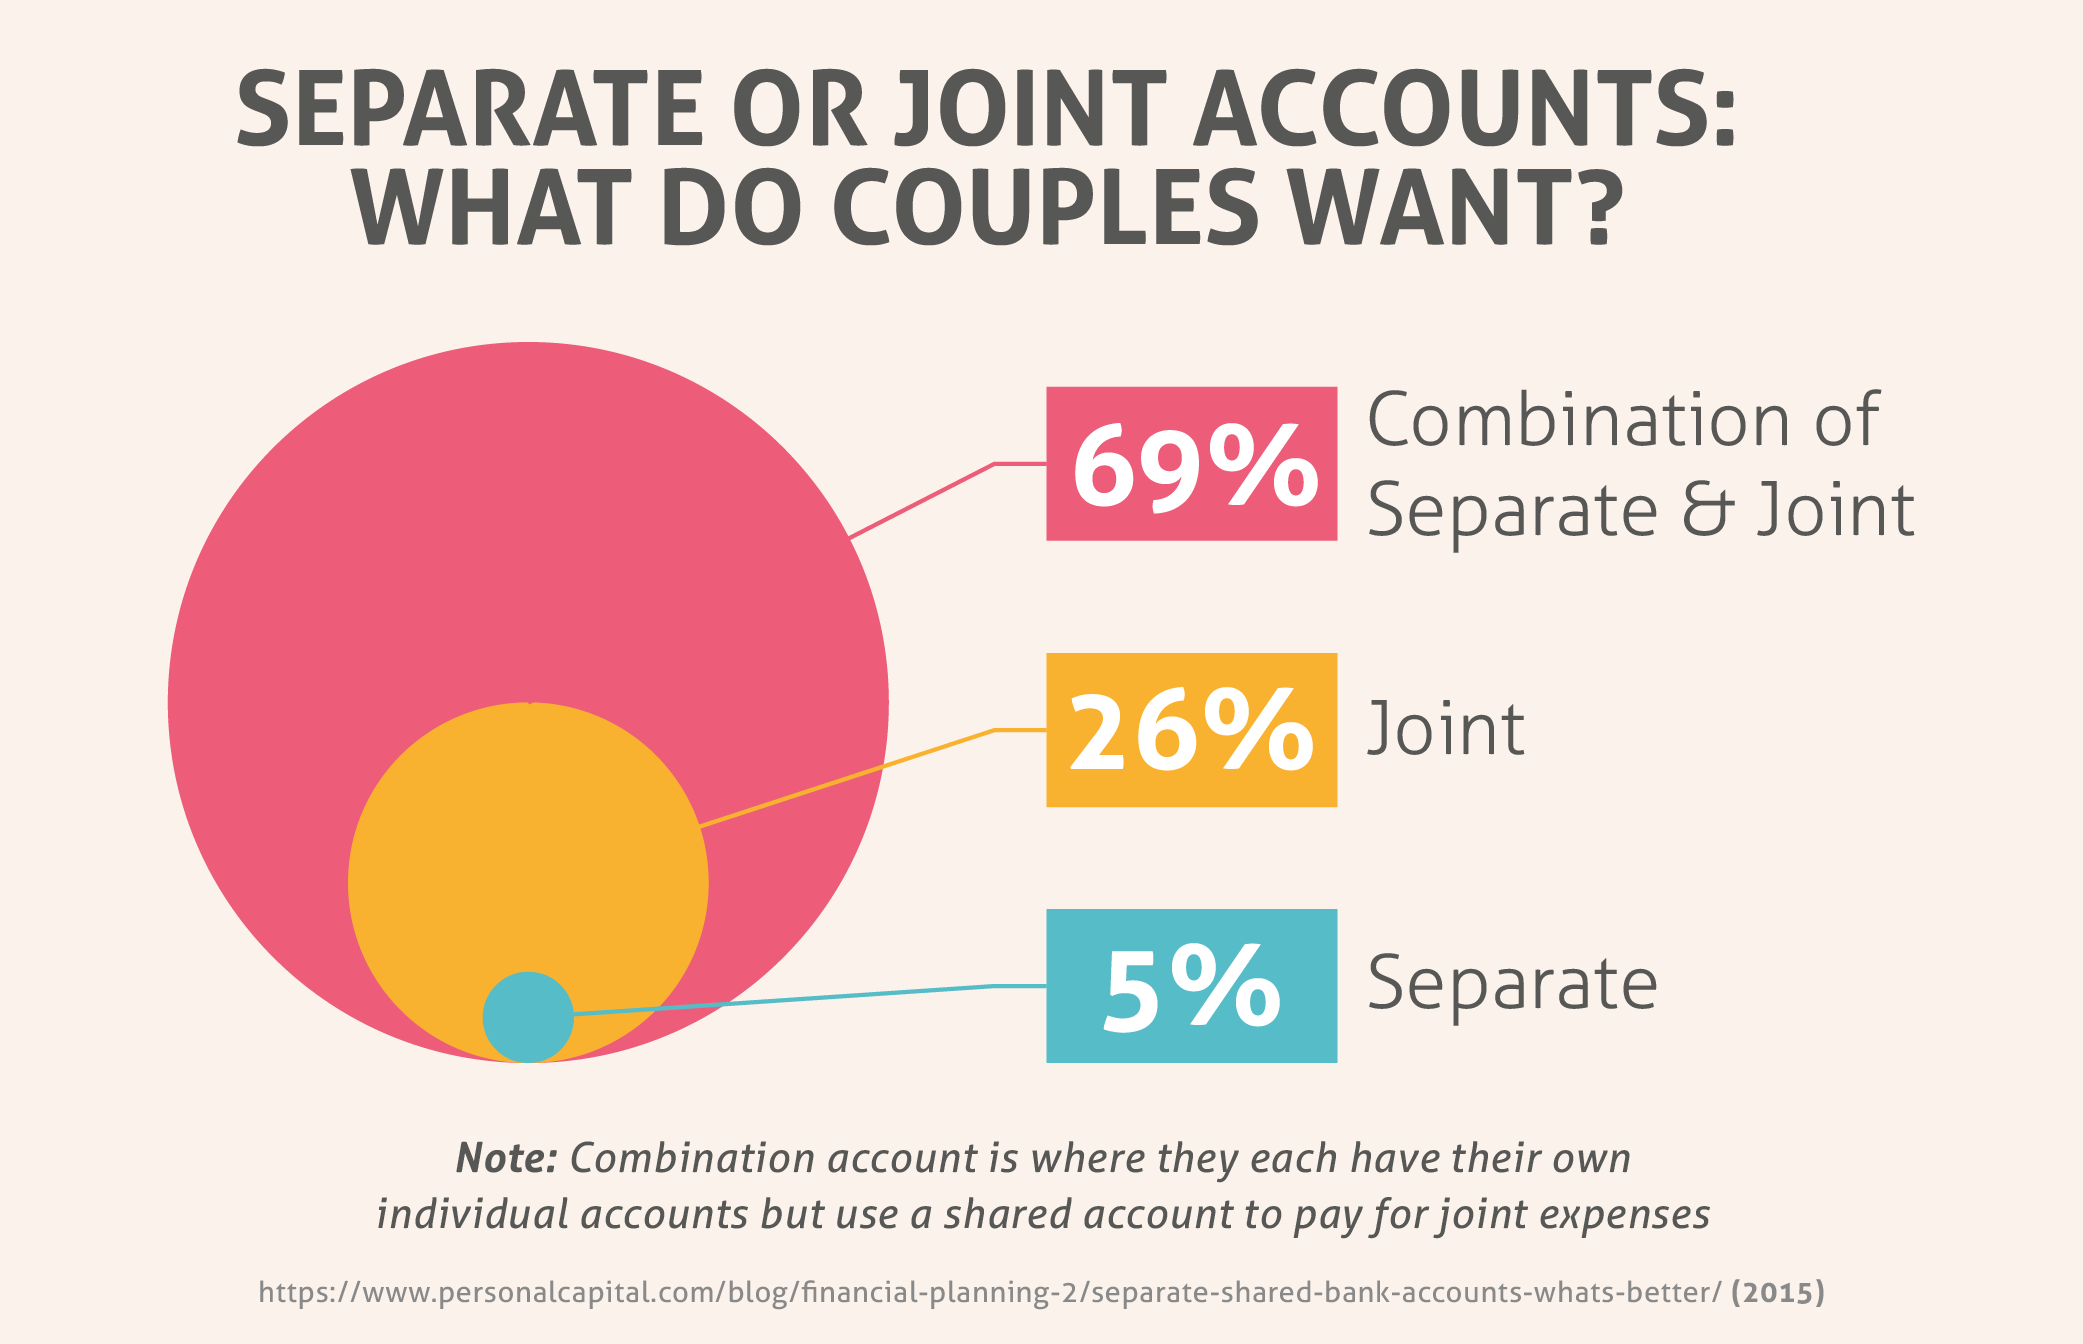 Separate or Joint Accounts: What Do Couples Want?